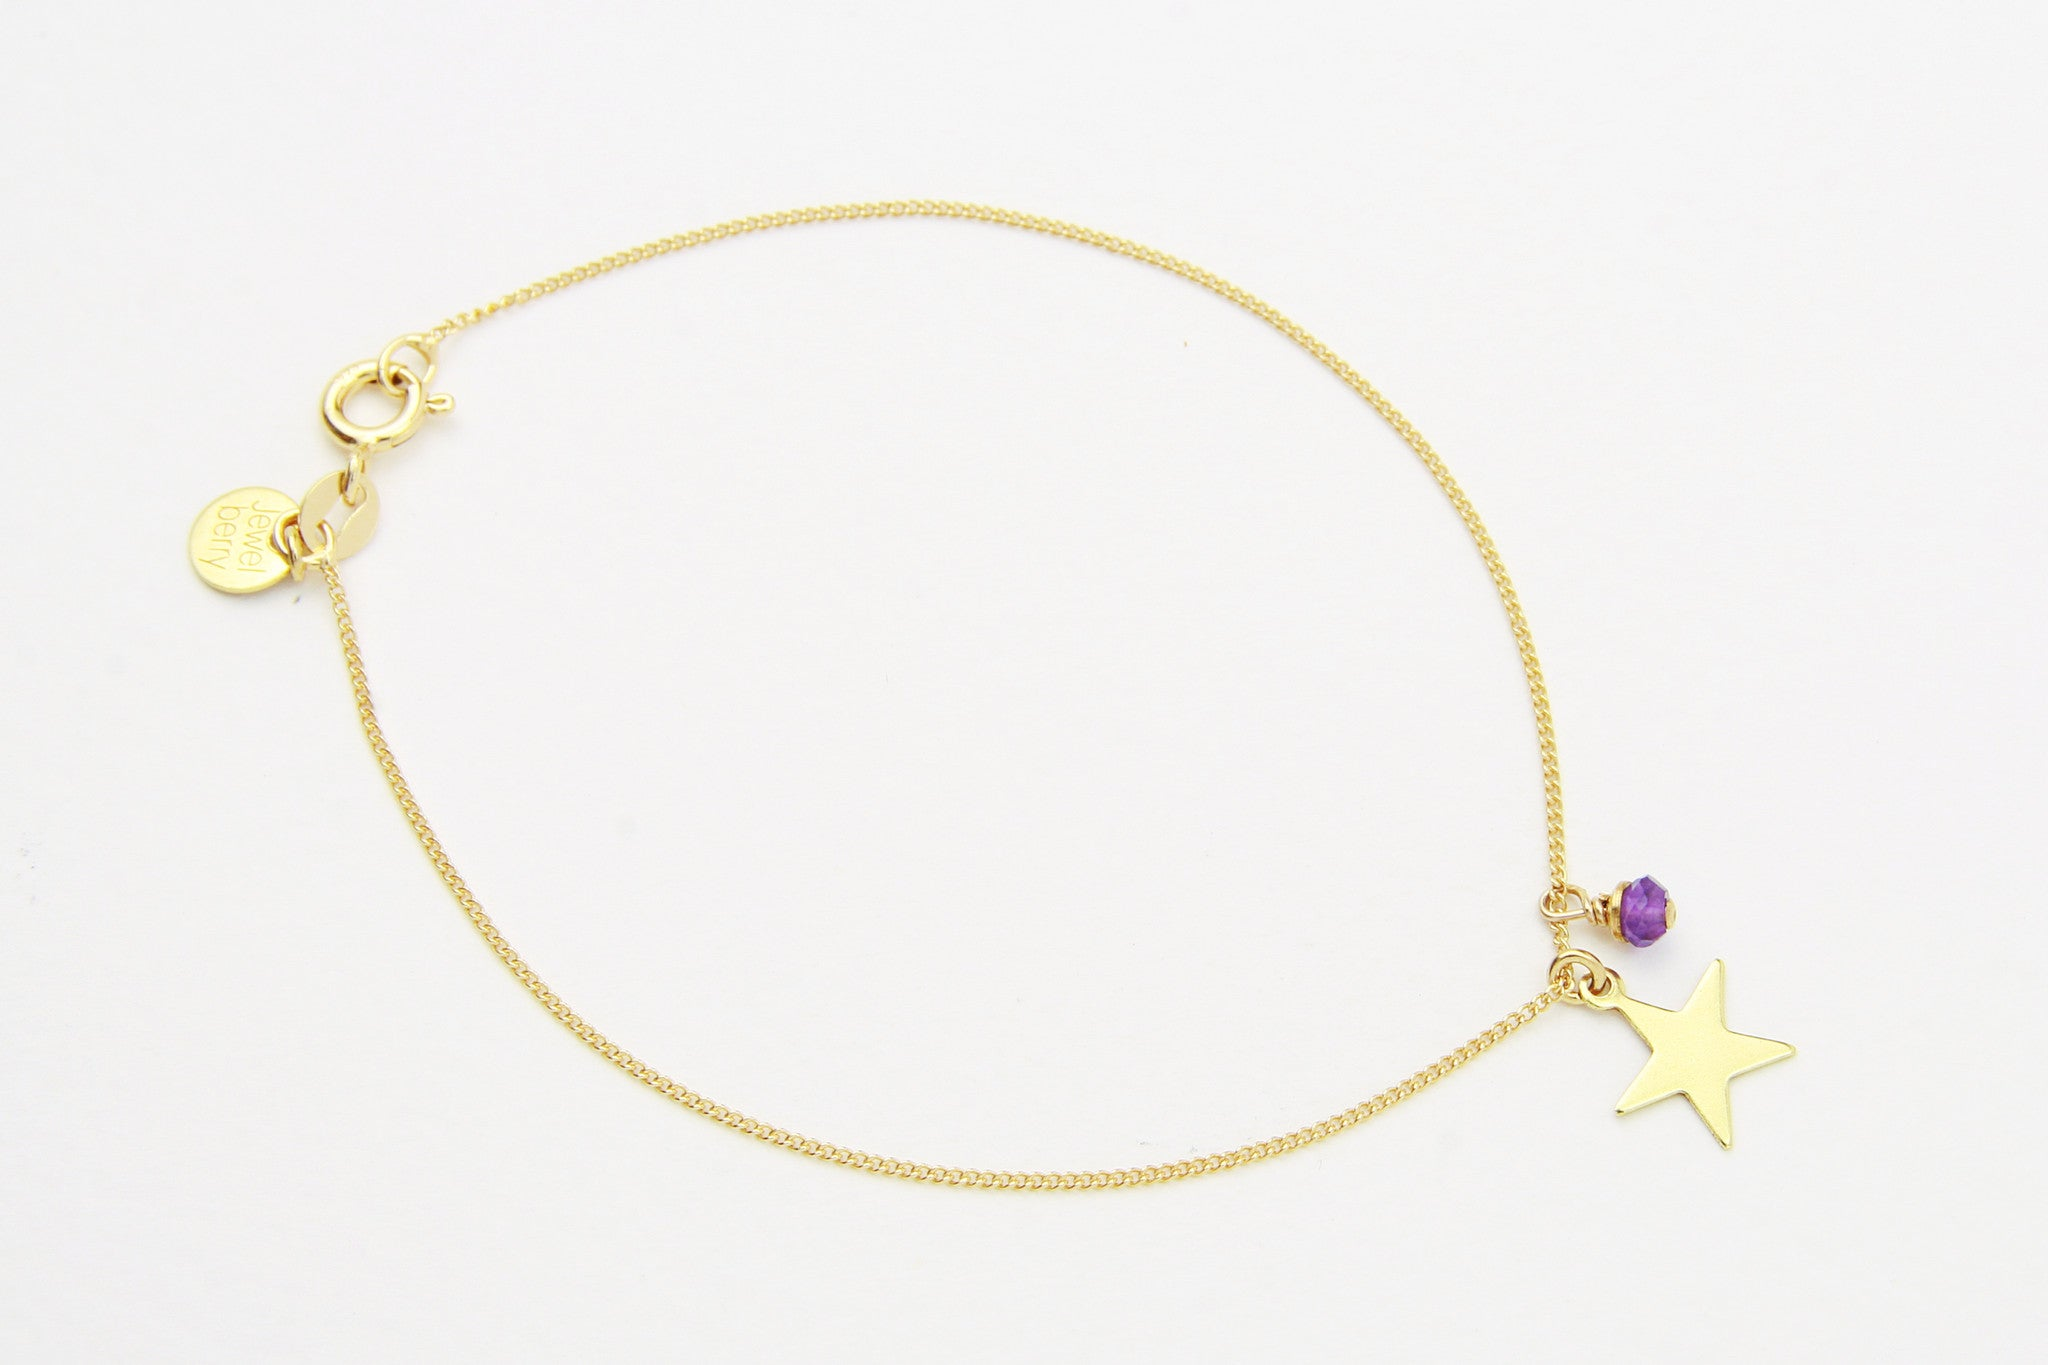 jewelberry armband bracelet plain star yellow gold plated sterling silver fine jewelry handmade with love fairtrade curb chain